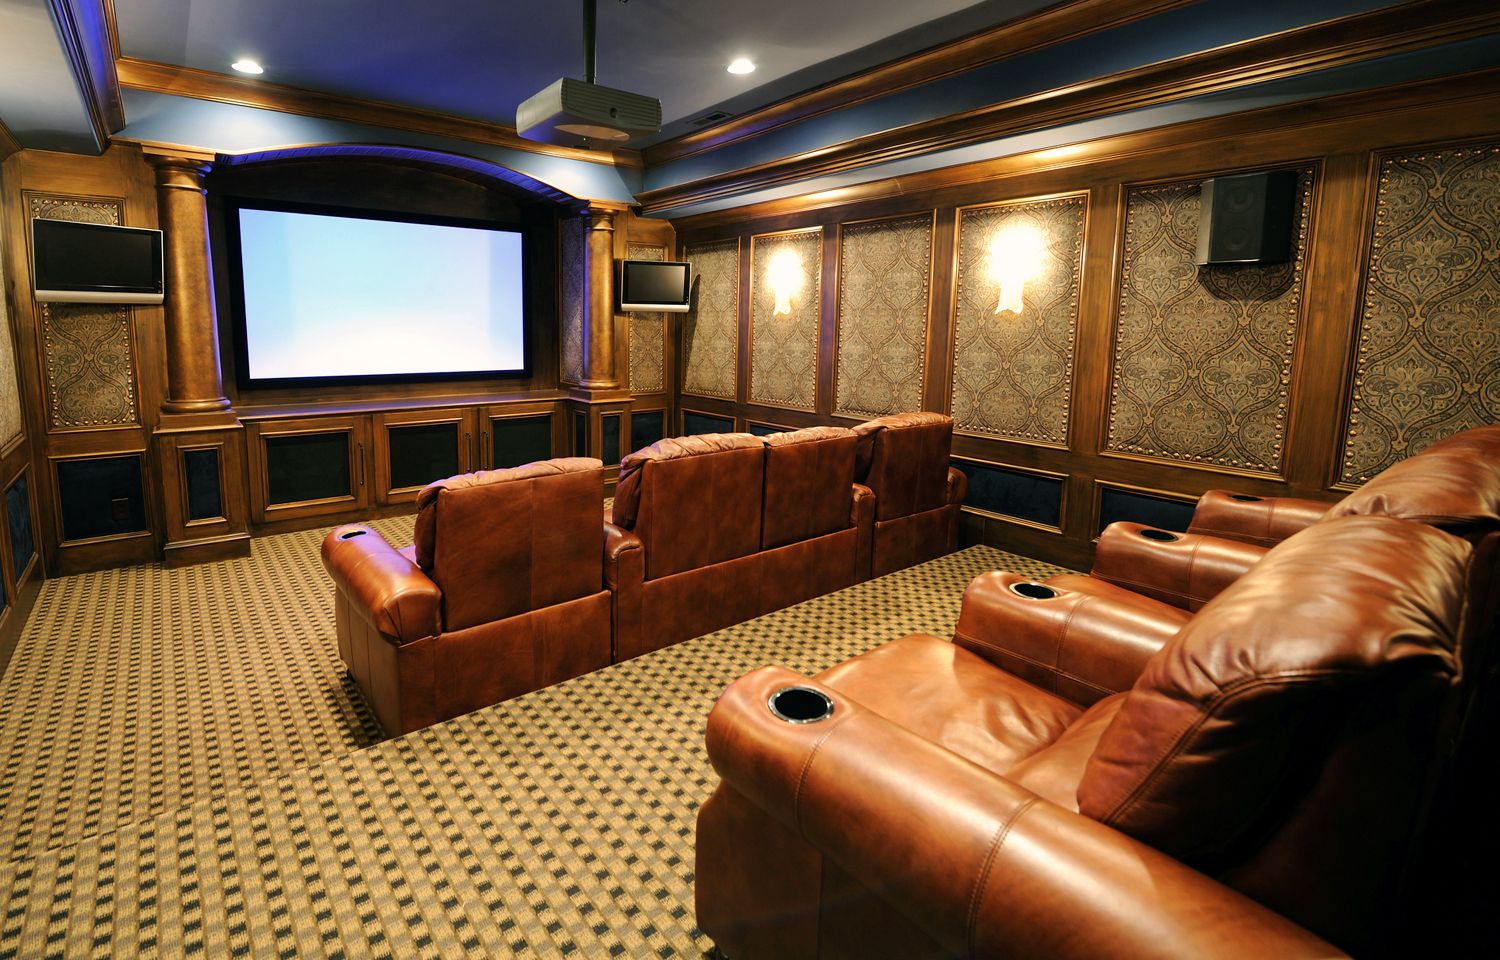 Thuisbioscoop Maken Information About A Home Theater You May Not Know